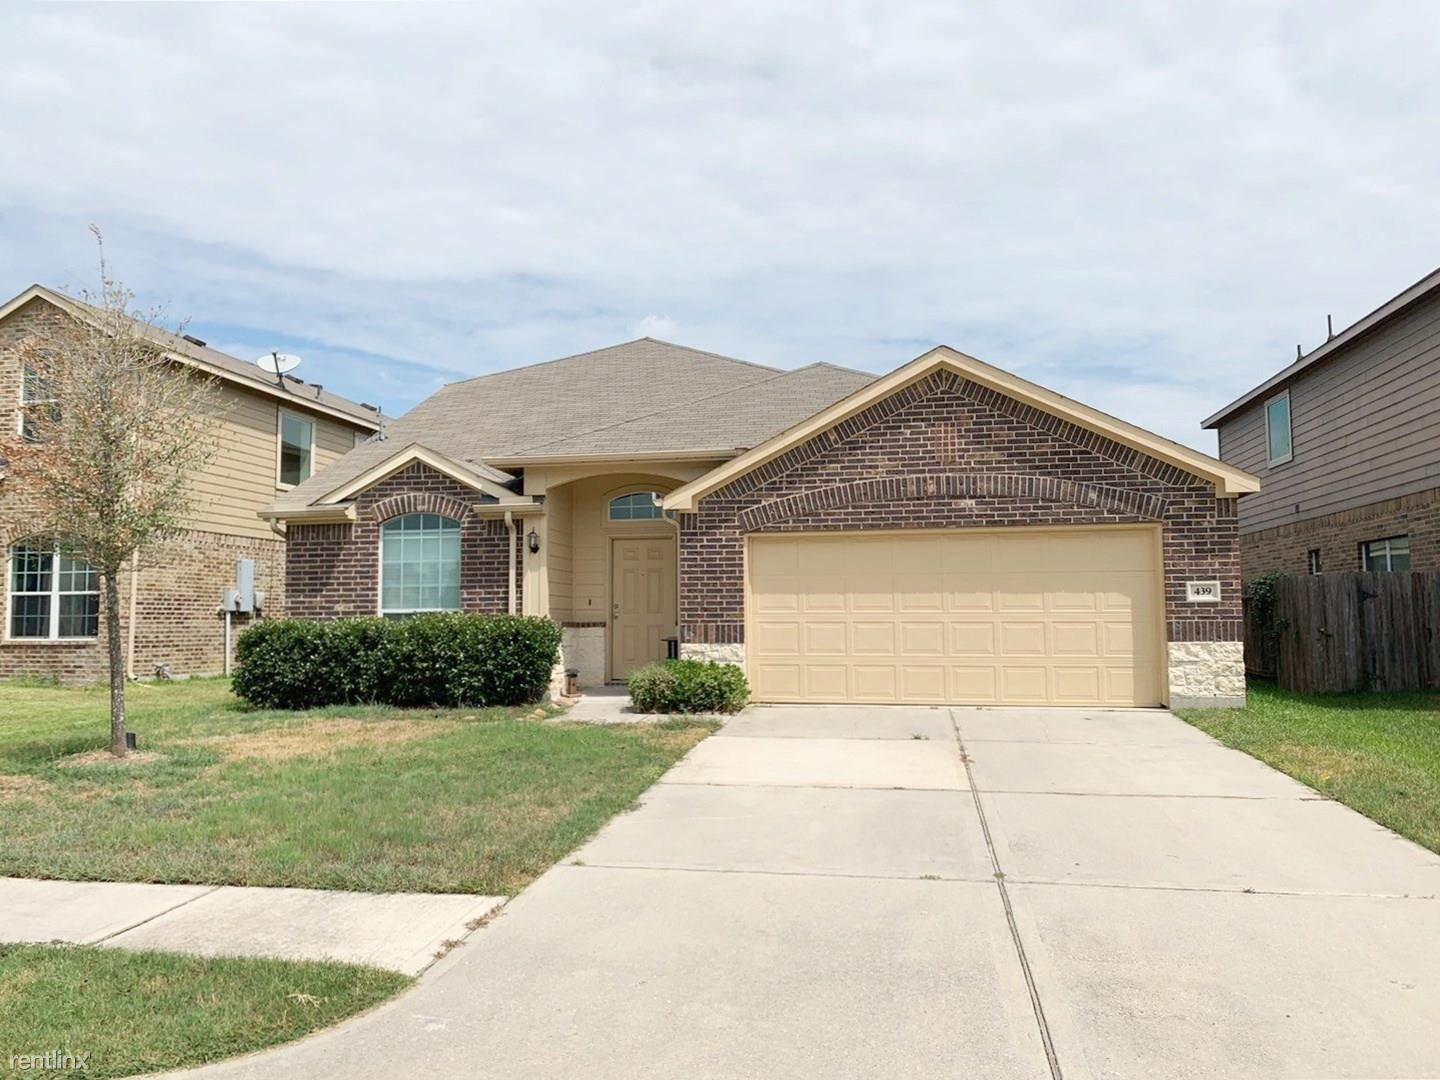 439 Woodhaven Forest Dr, Conroe, TX - $1,725